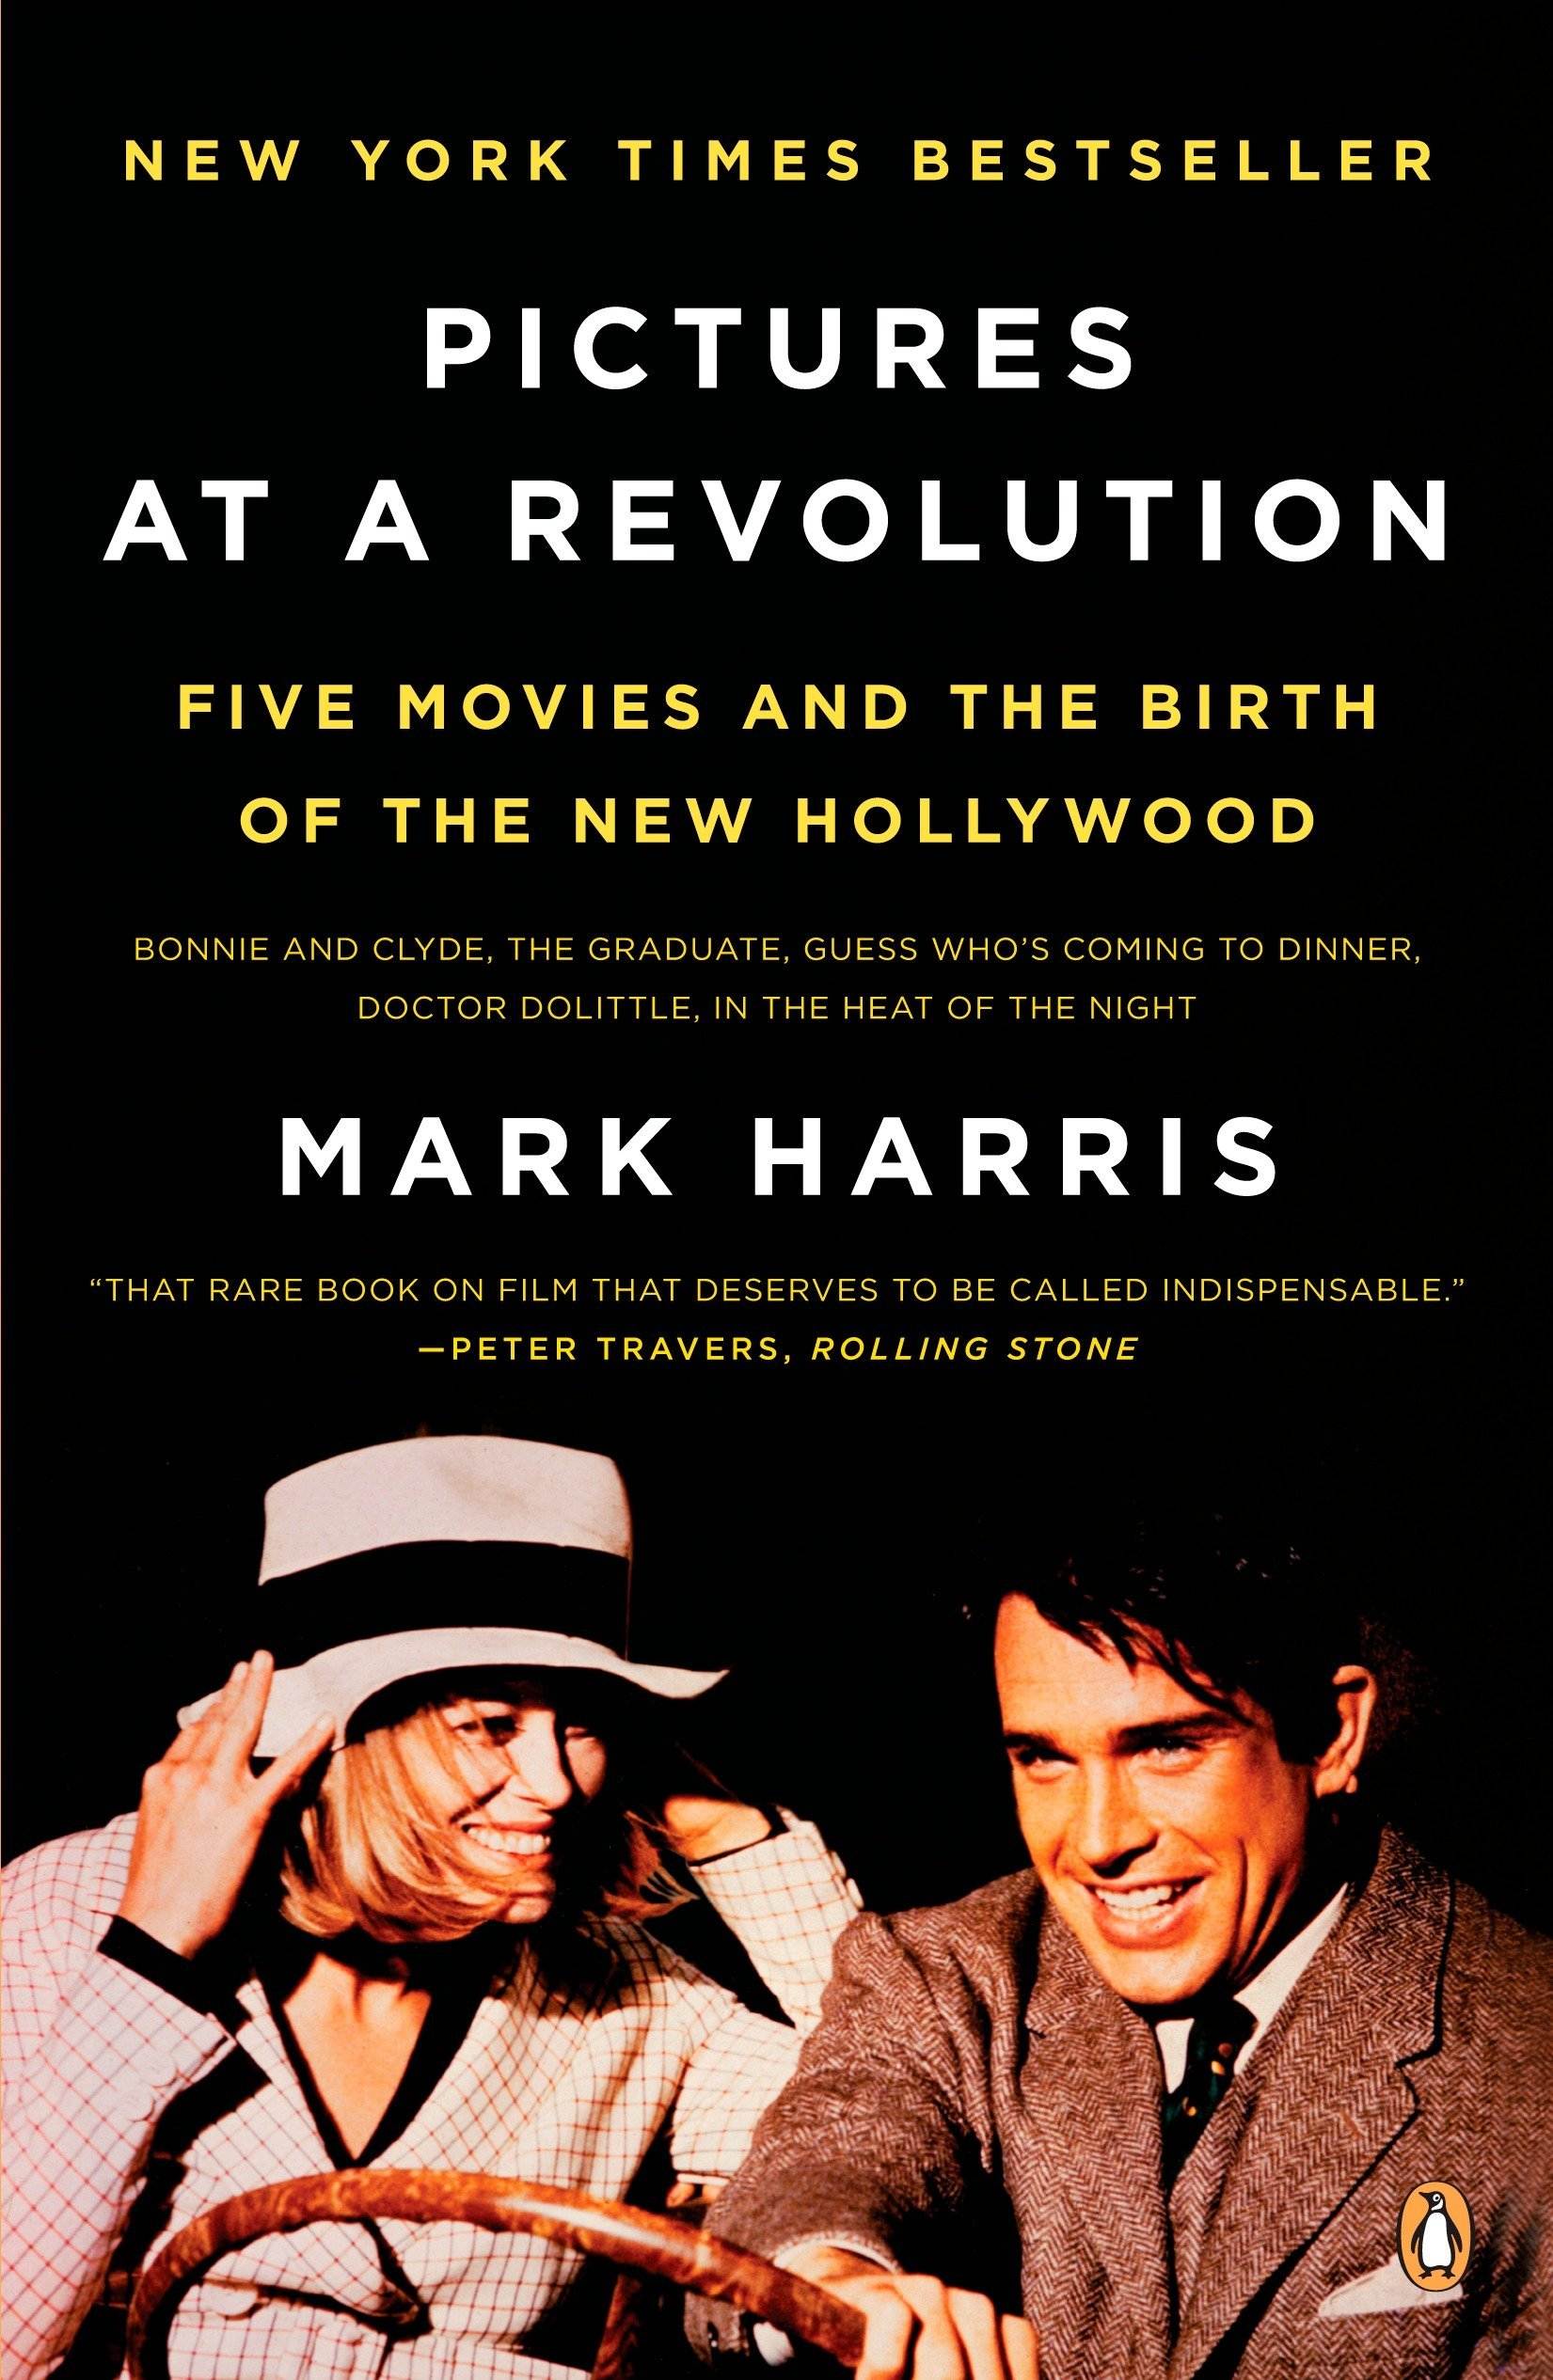 Pictures at a Revolution: Five Movies and the Birth of the New Hollywood by Mark Harris